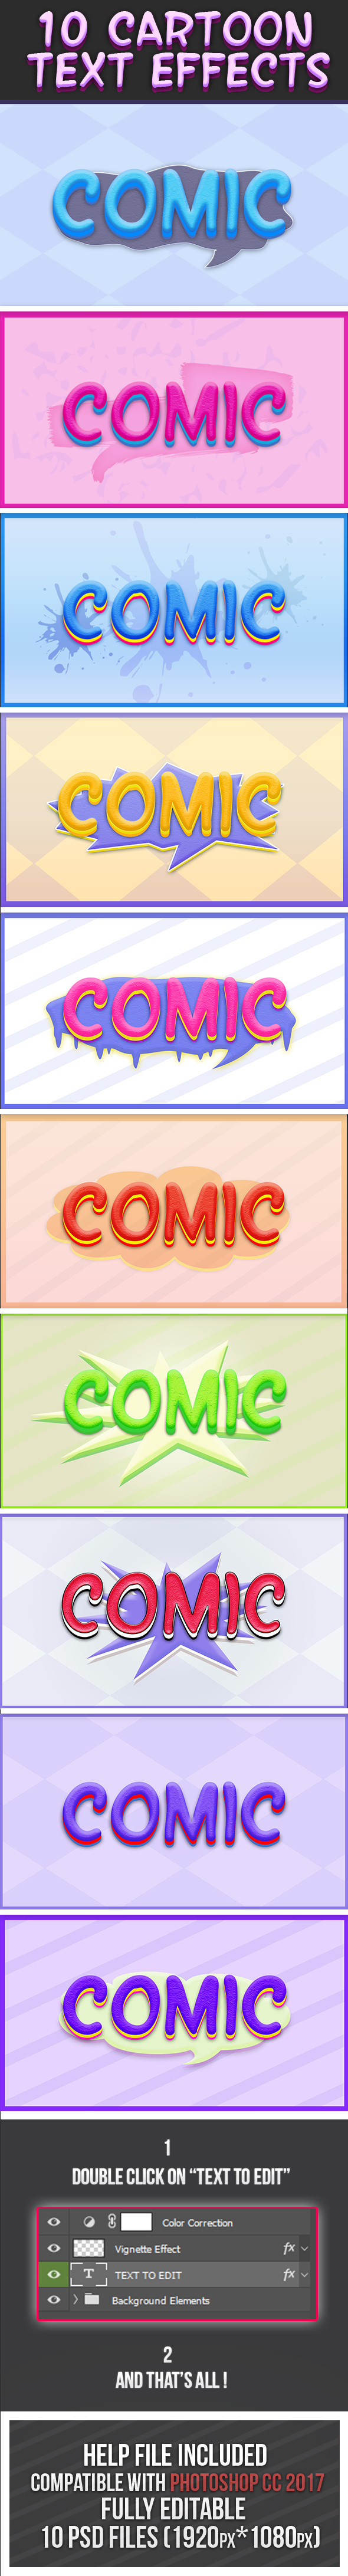 Cartoon Text Effects 4 - Text Effects Styles